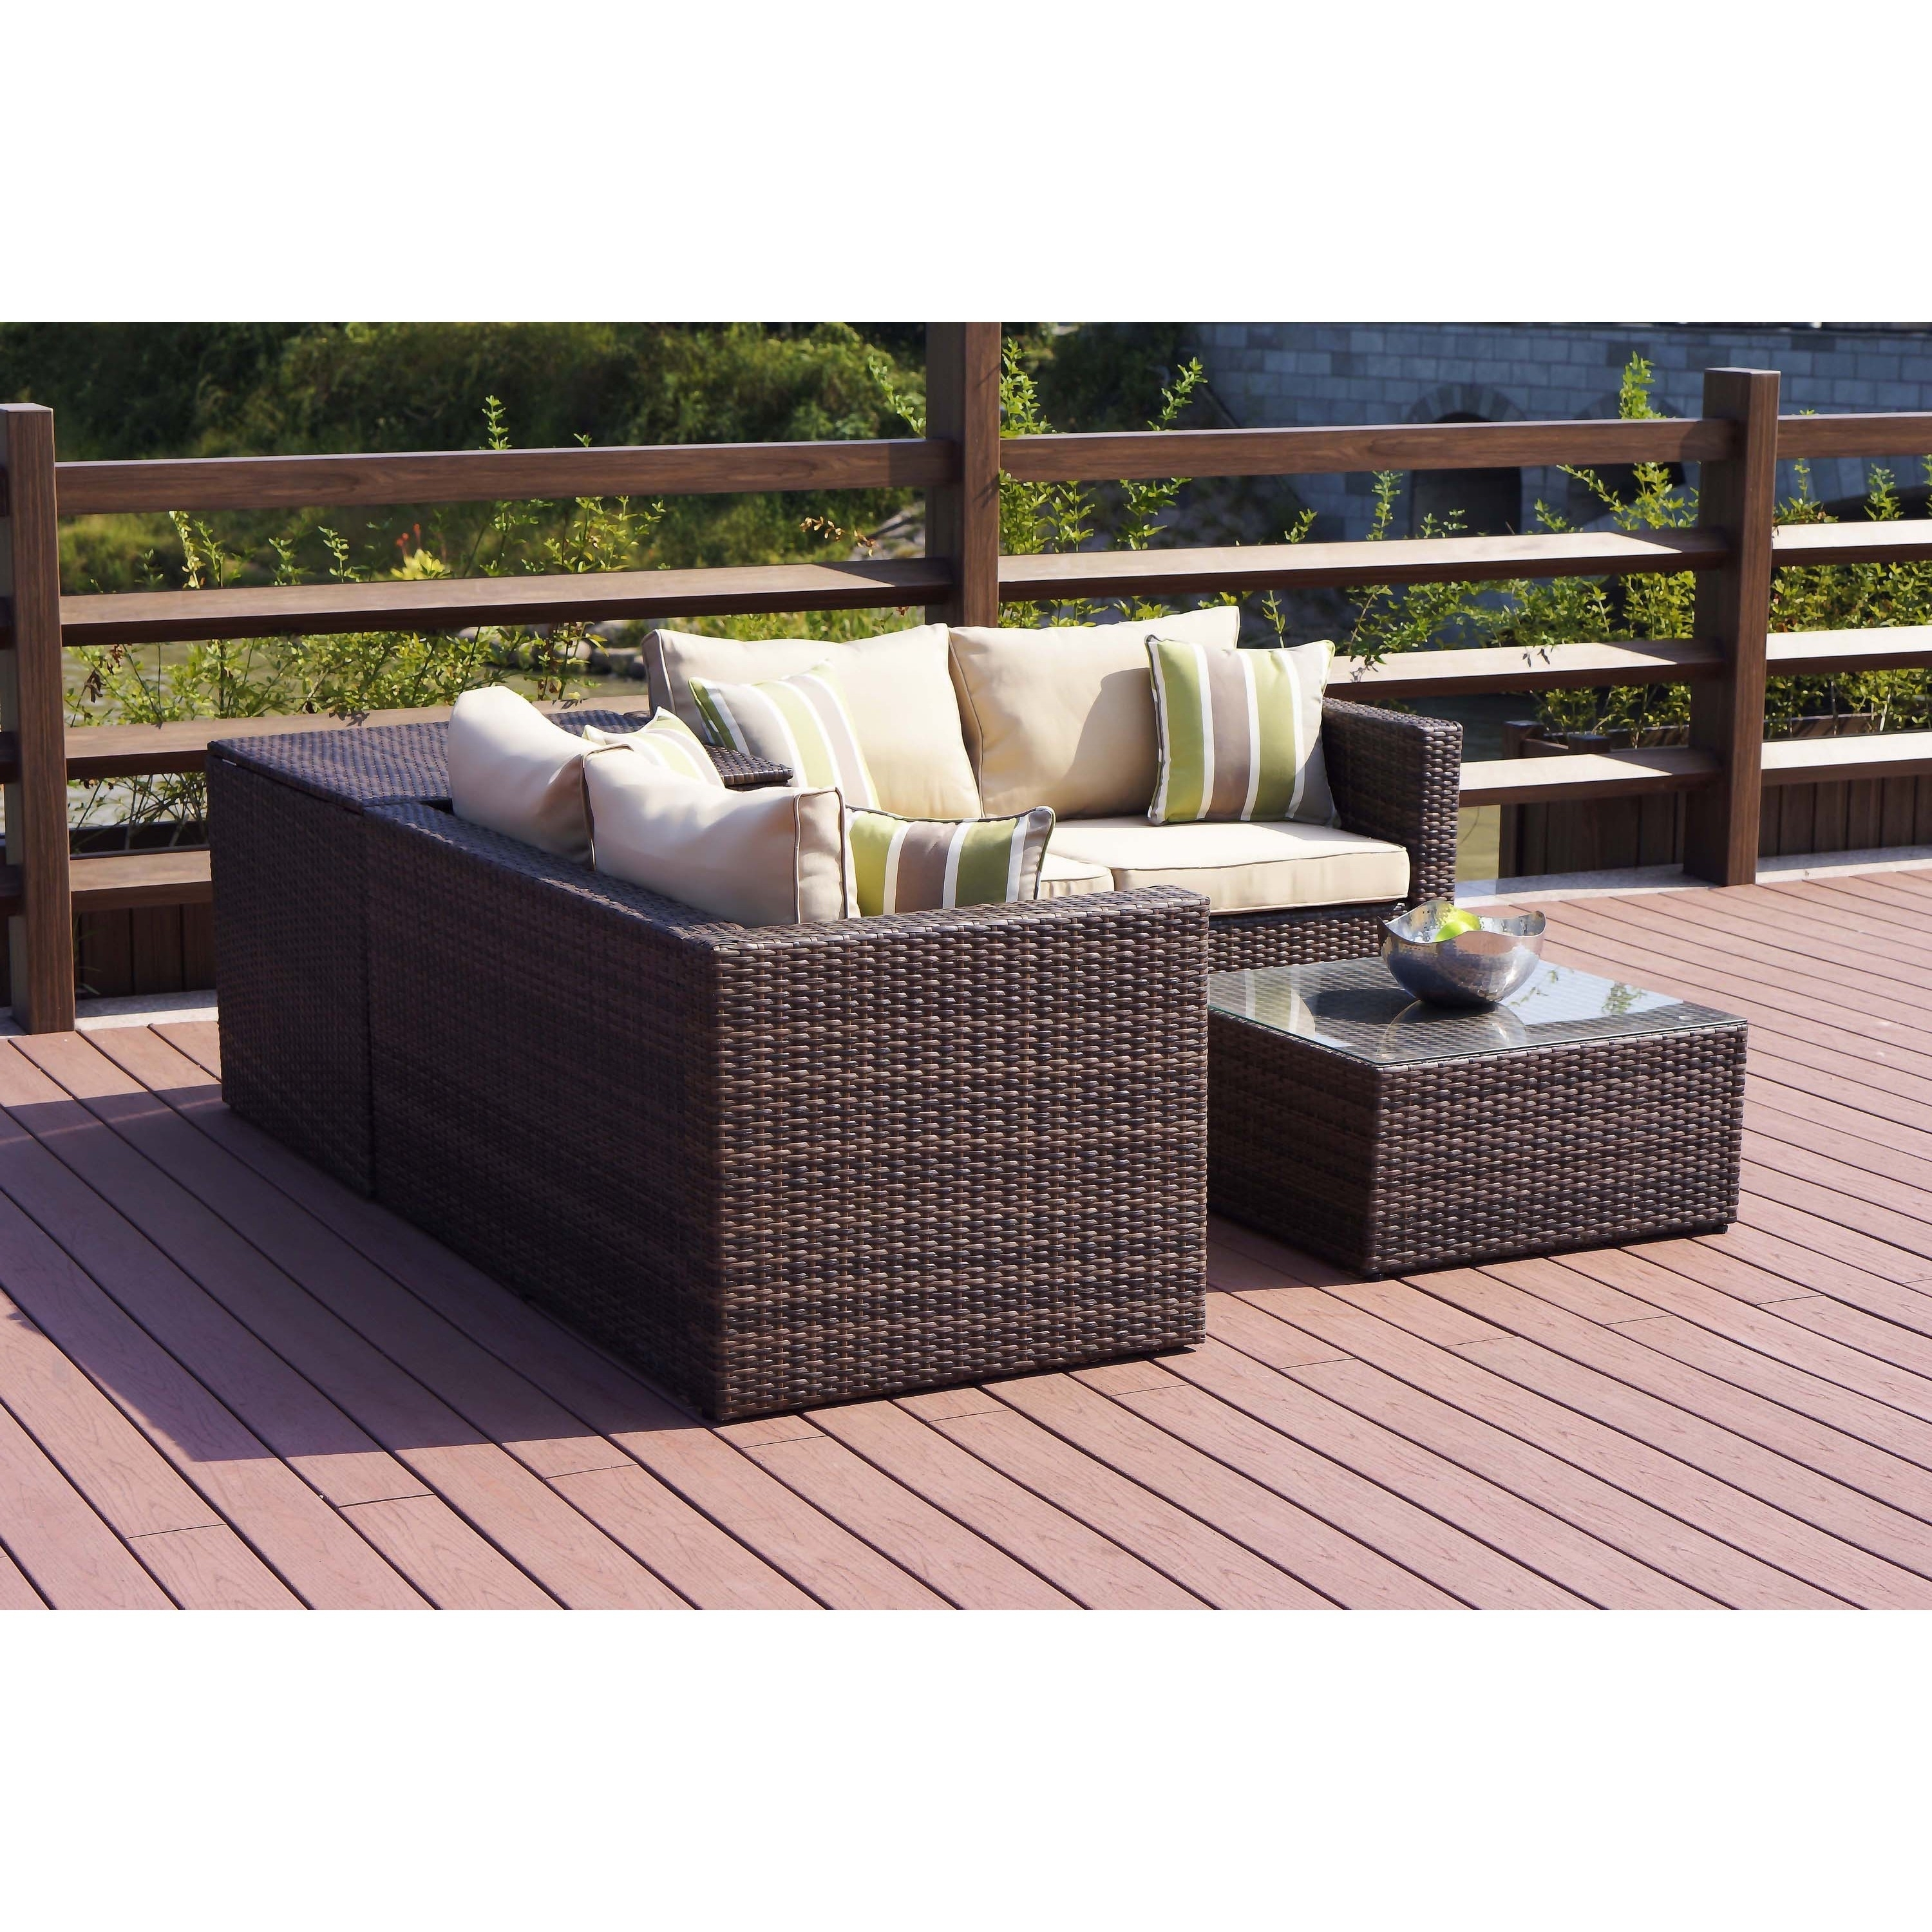 Recent Patio Conversation Set With Storage With Regard To Shop Zoe Outdoor 4 Piece Conversation Set With Storage Box – On Sale (View 14 of 20)